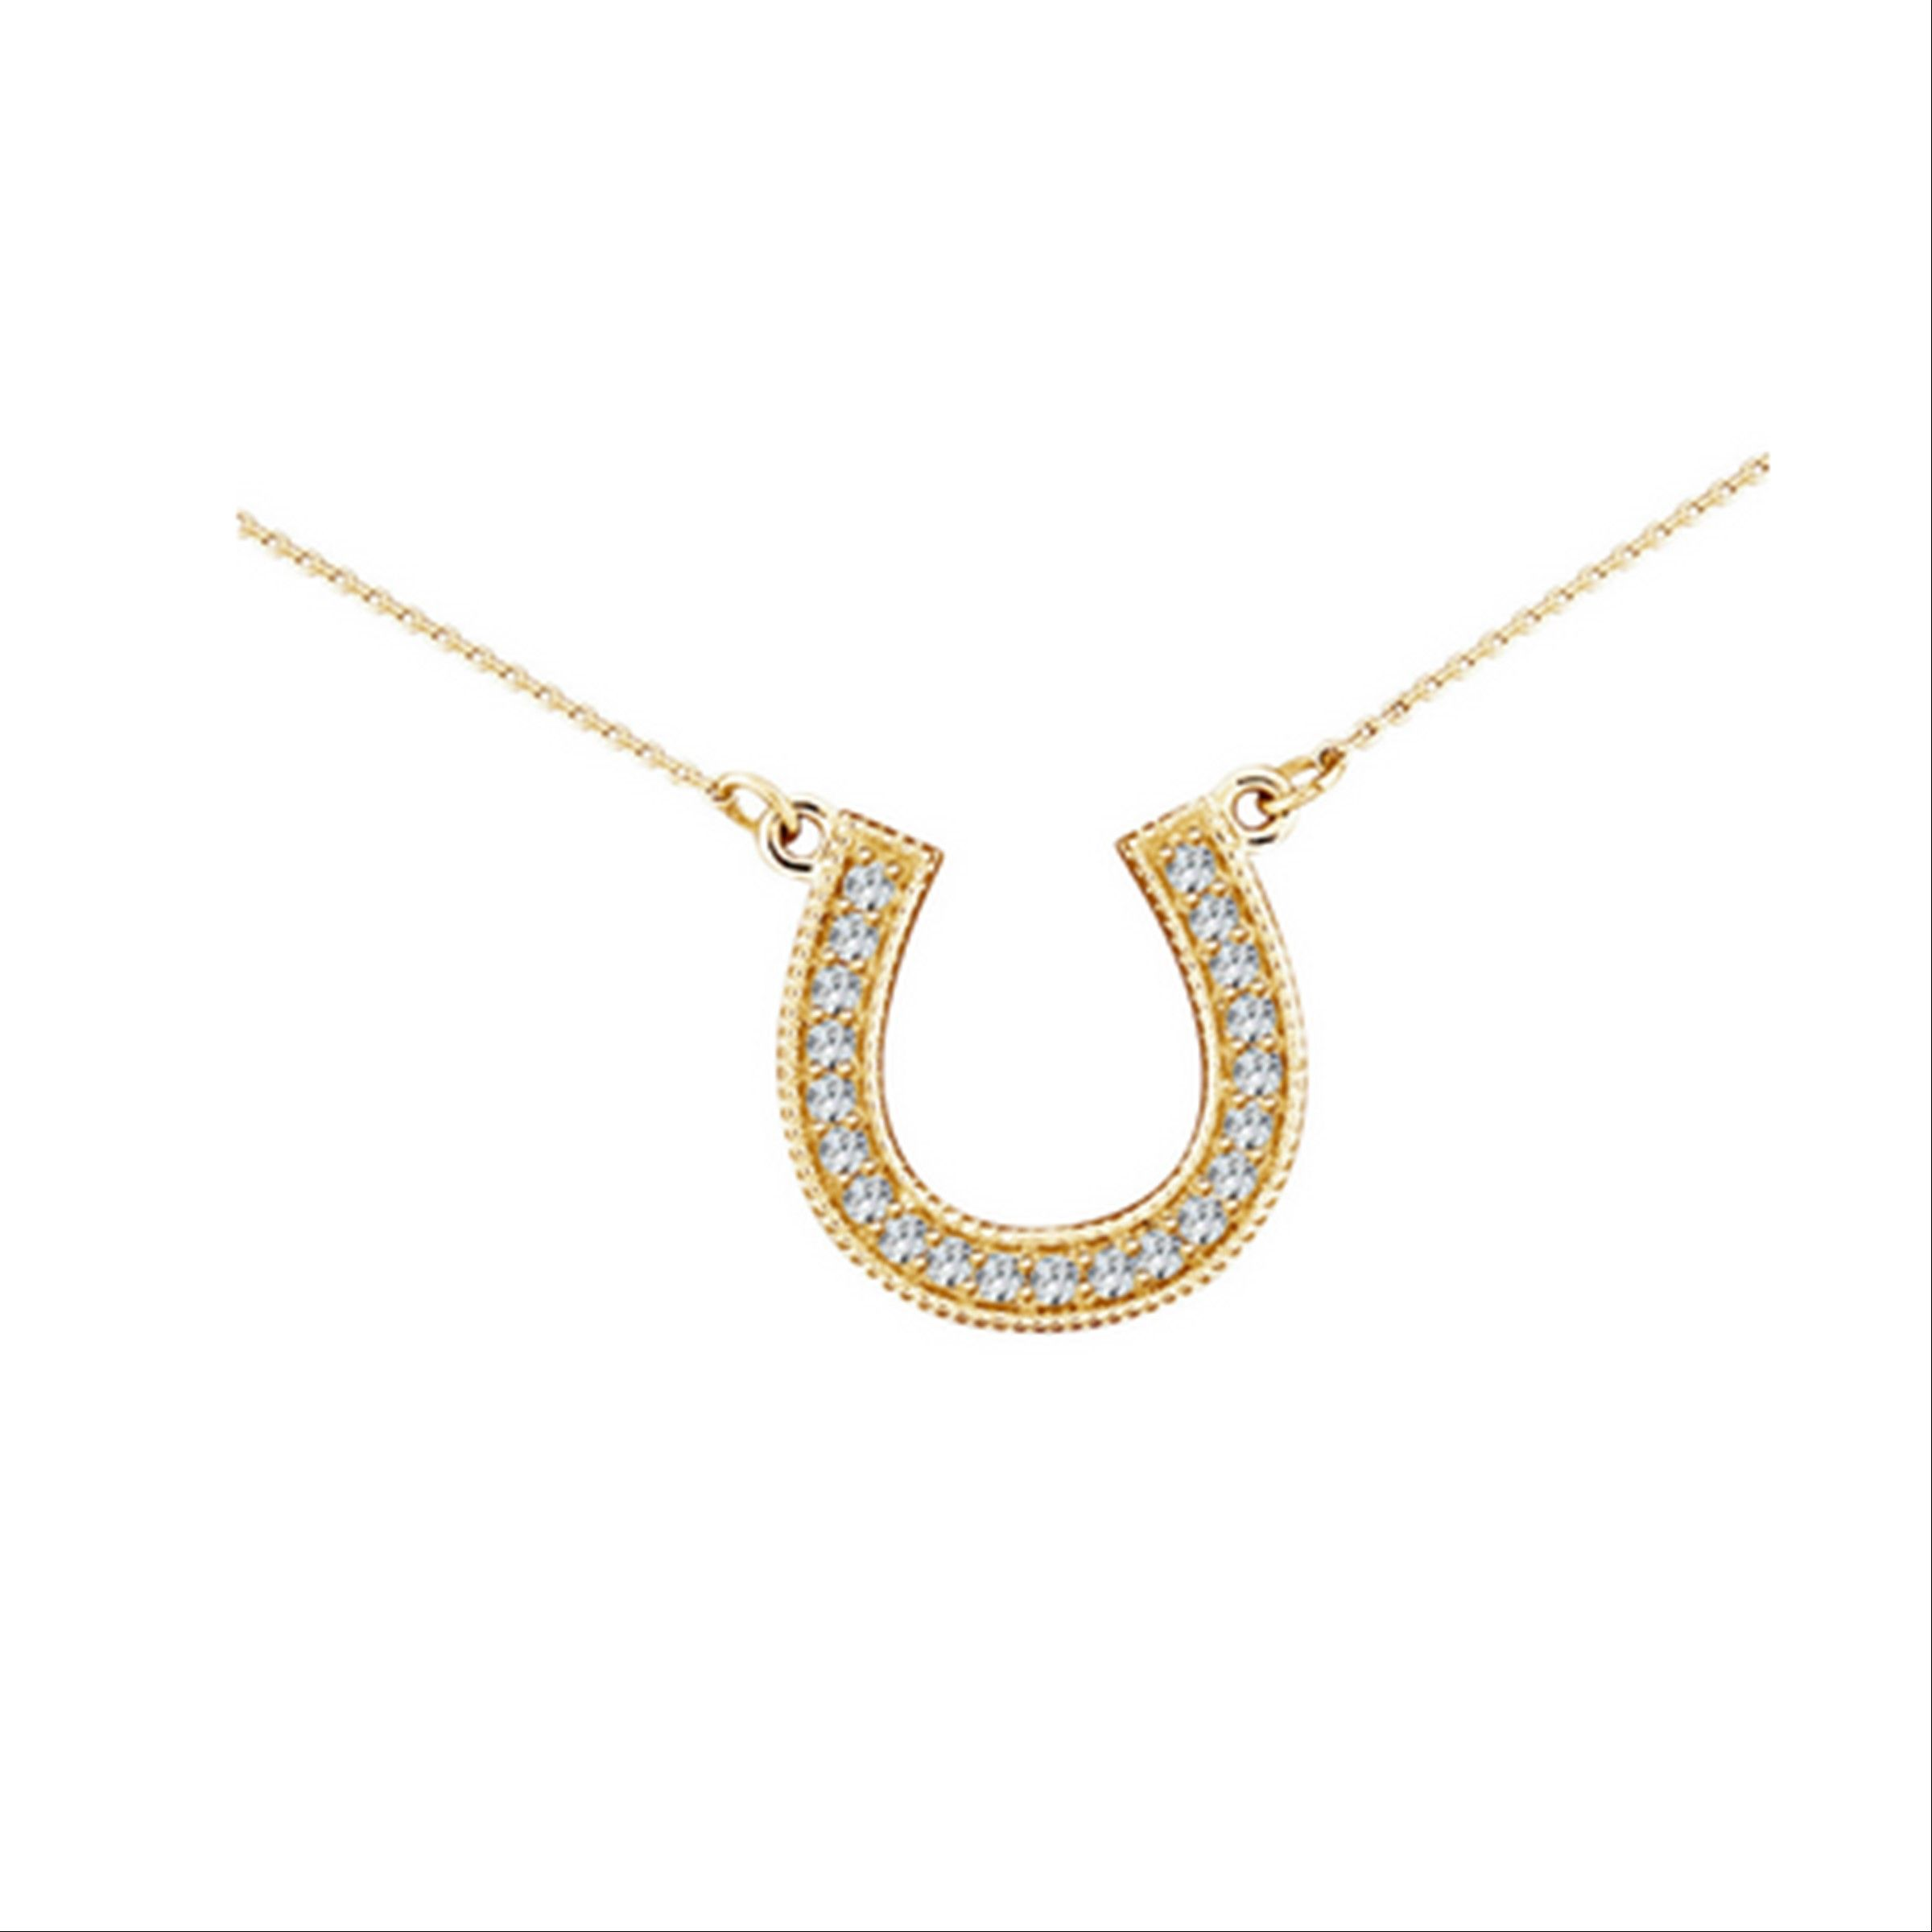 pendant horseshoe accessorize products it llc necklacehorseshoe necklace collections necklaces